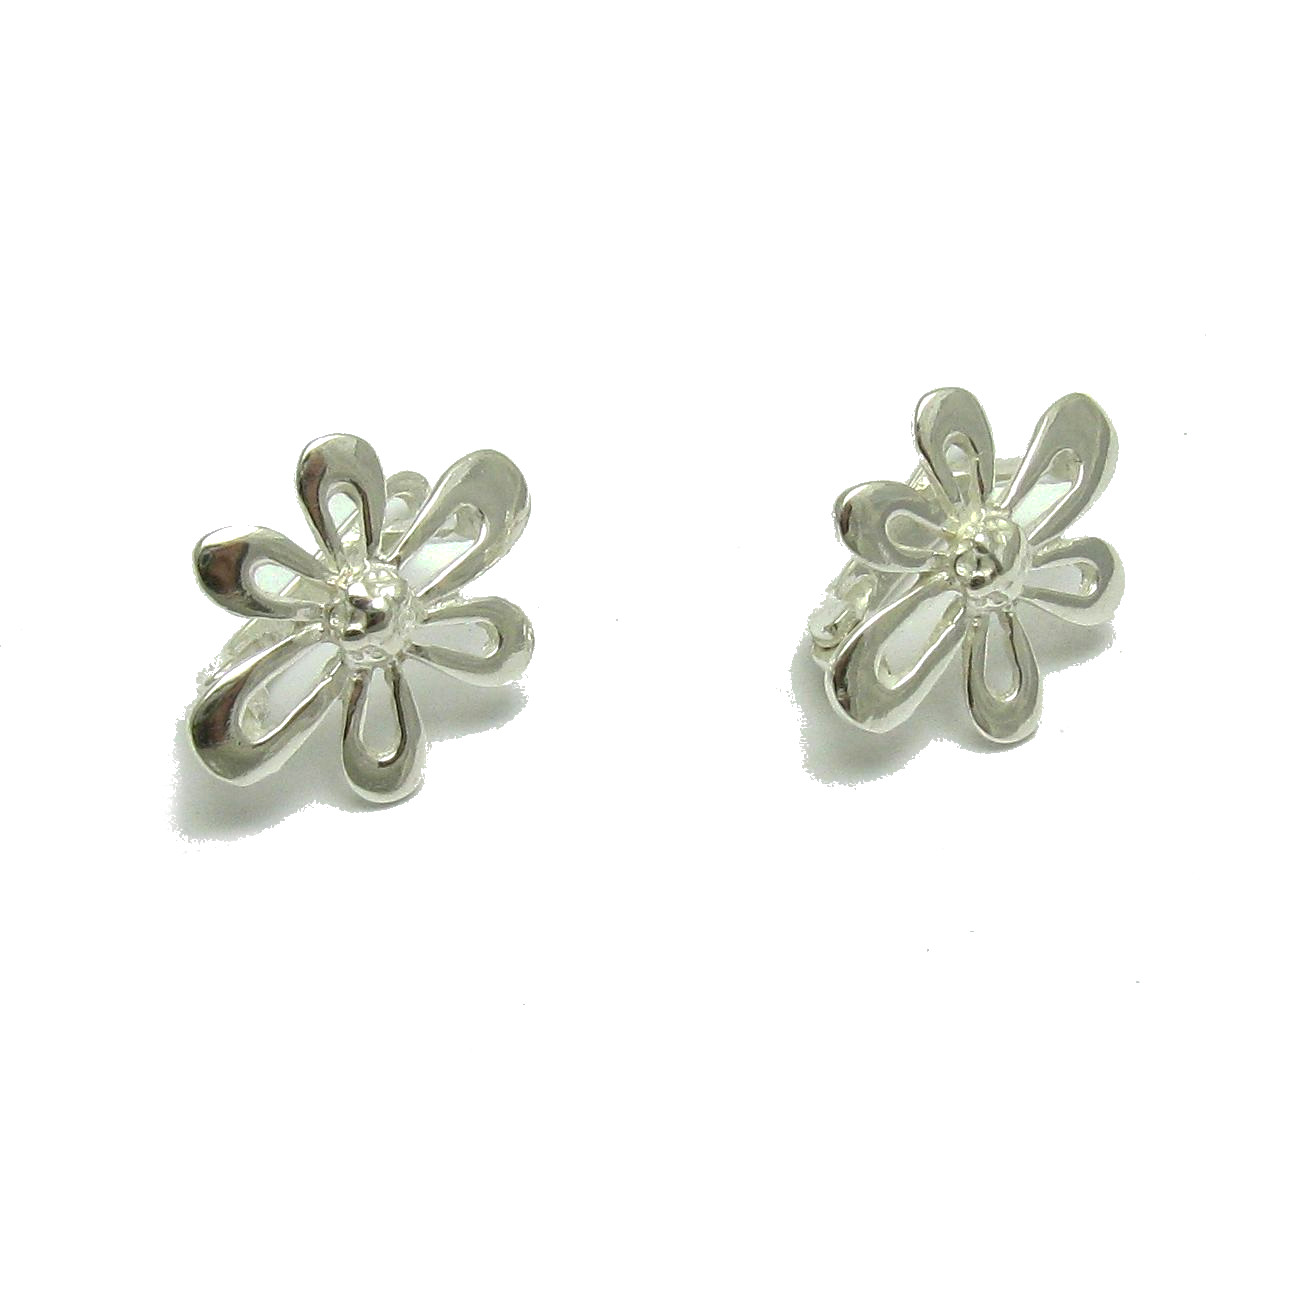 Silver earrings - E000709